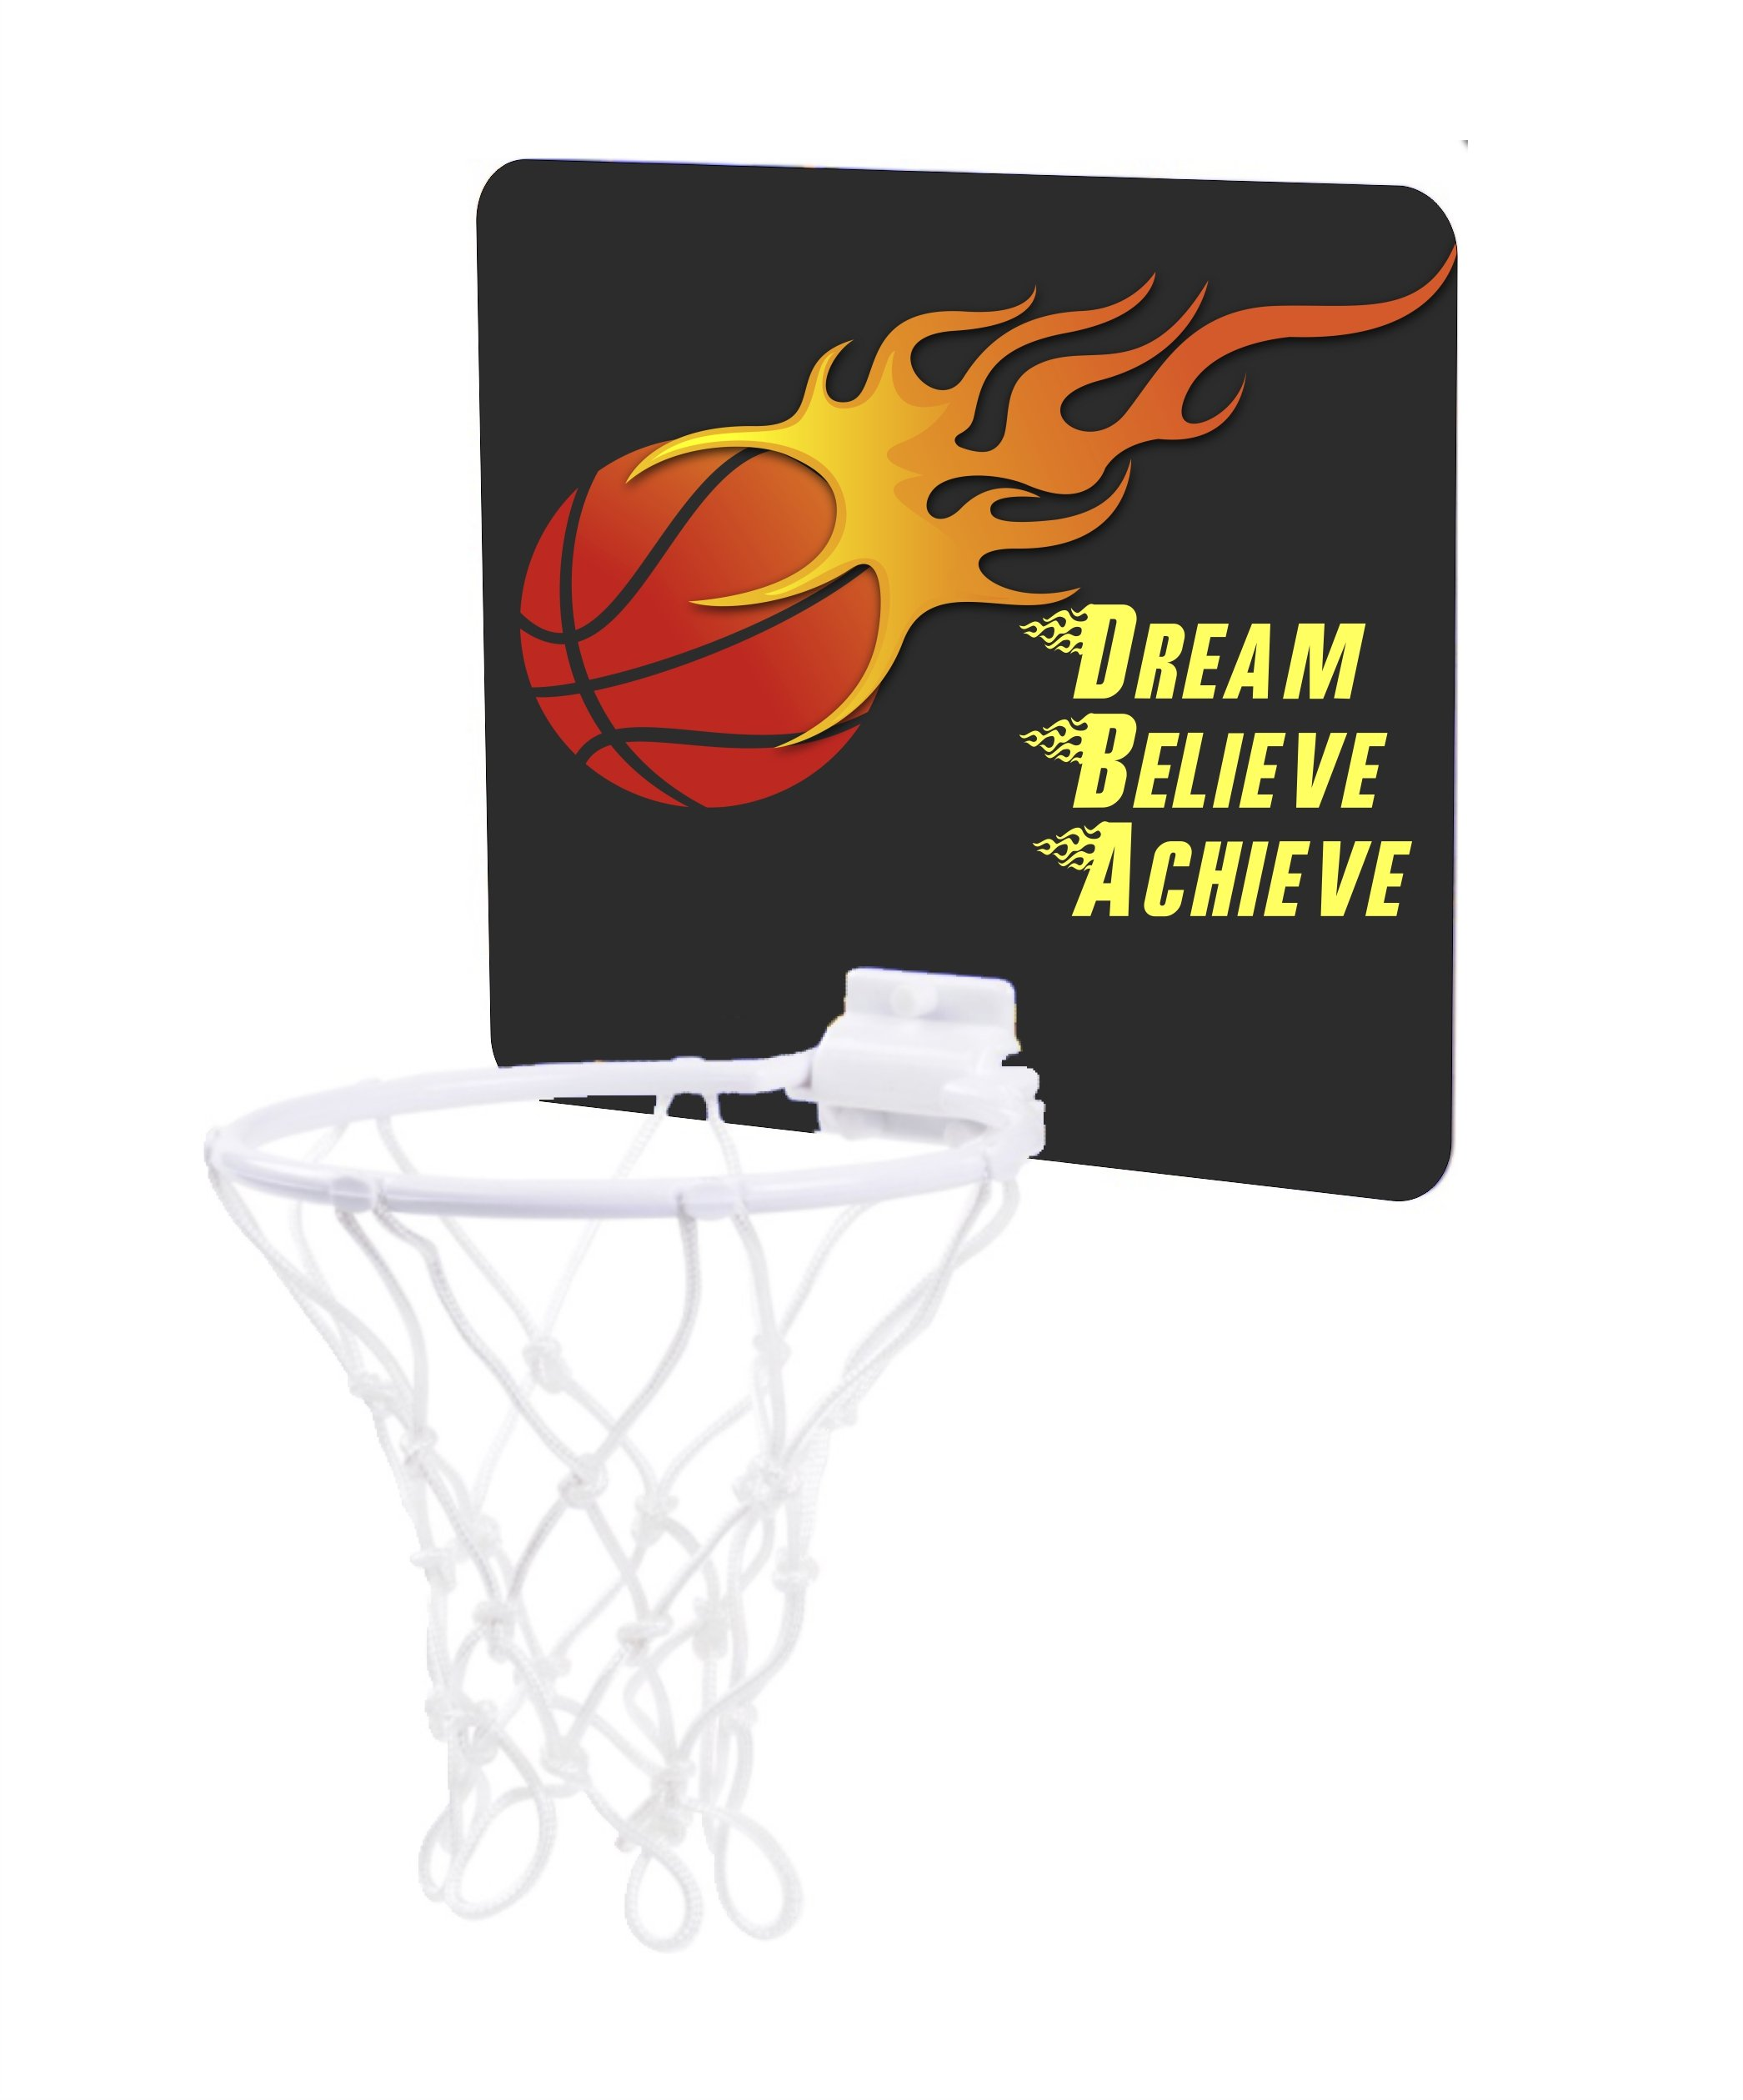 Jacks Outlet Flaming Basketball Design - Dream Believe Achieve - Childrens 7.5'' x 9'' Mini Basketball Backboard - Goal with 6'' Hoop